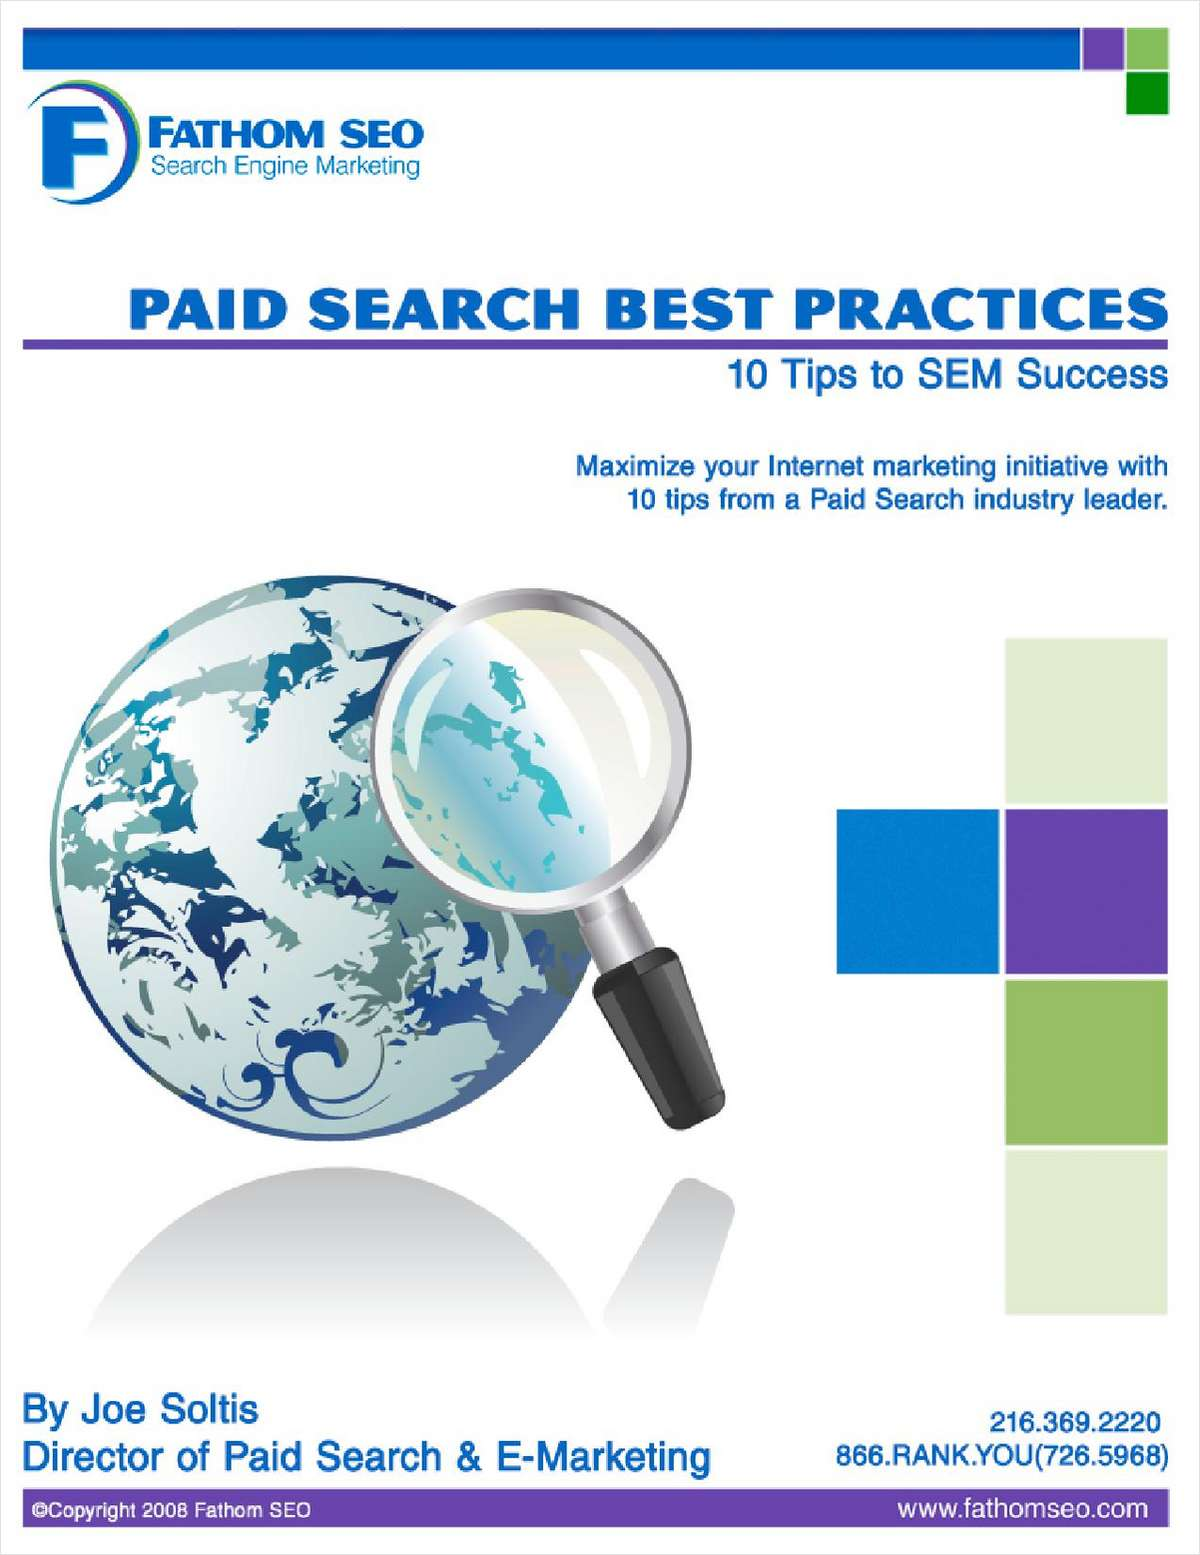 Paid Search Best Practices